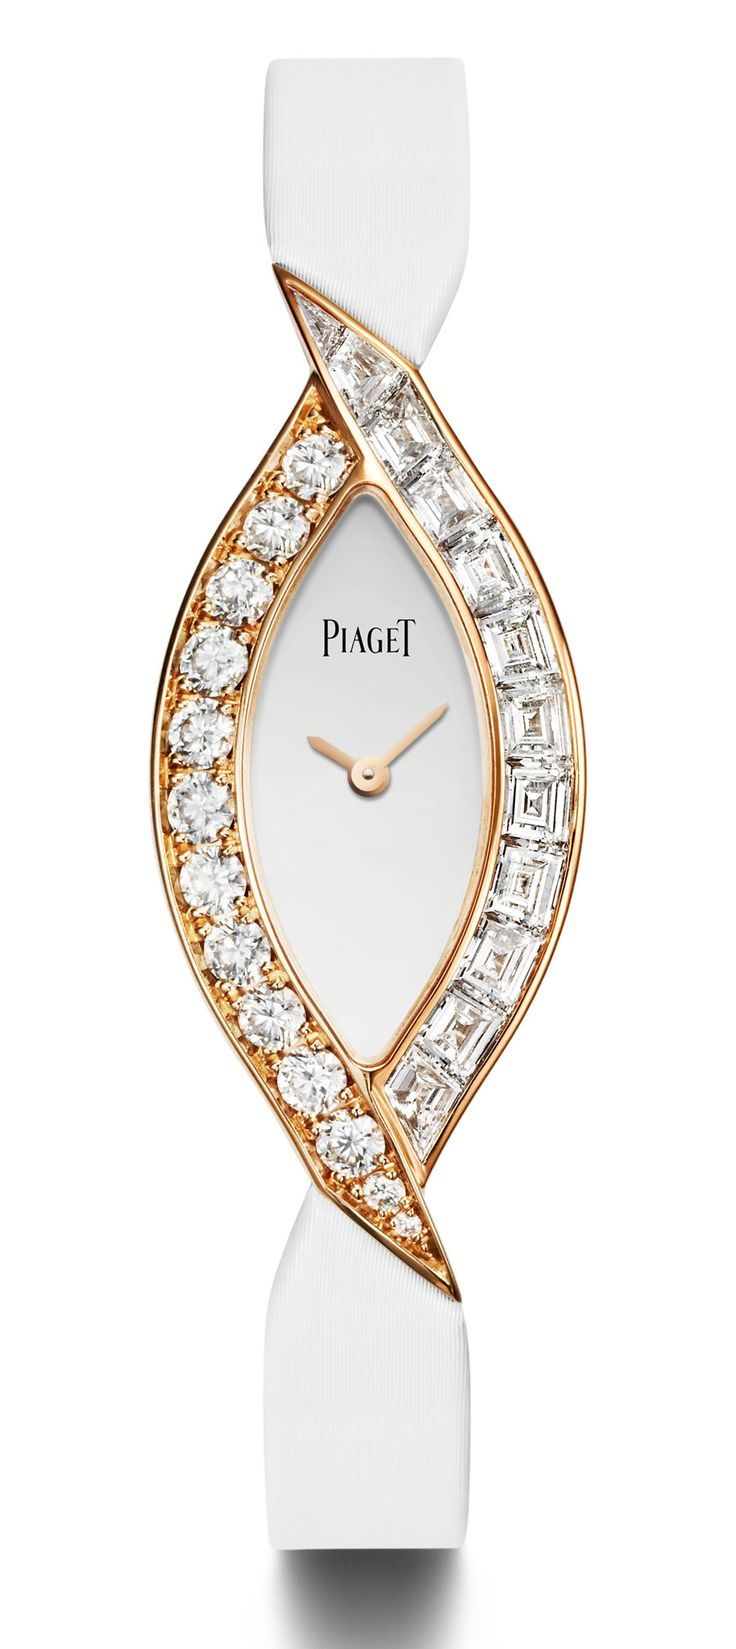 Piaget Couture Précieuse diamond and rose gold jeweller watch | The House of Beccaria